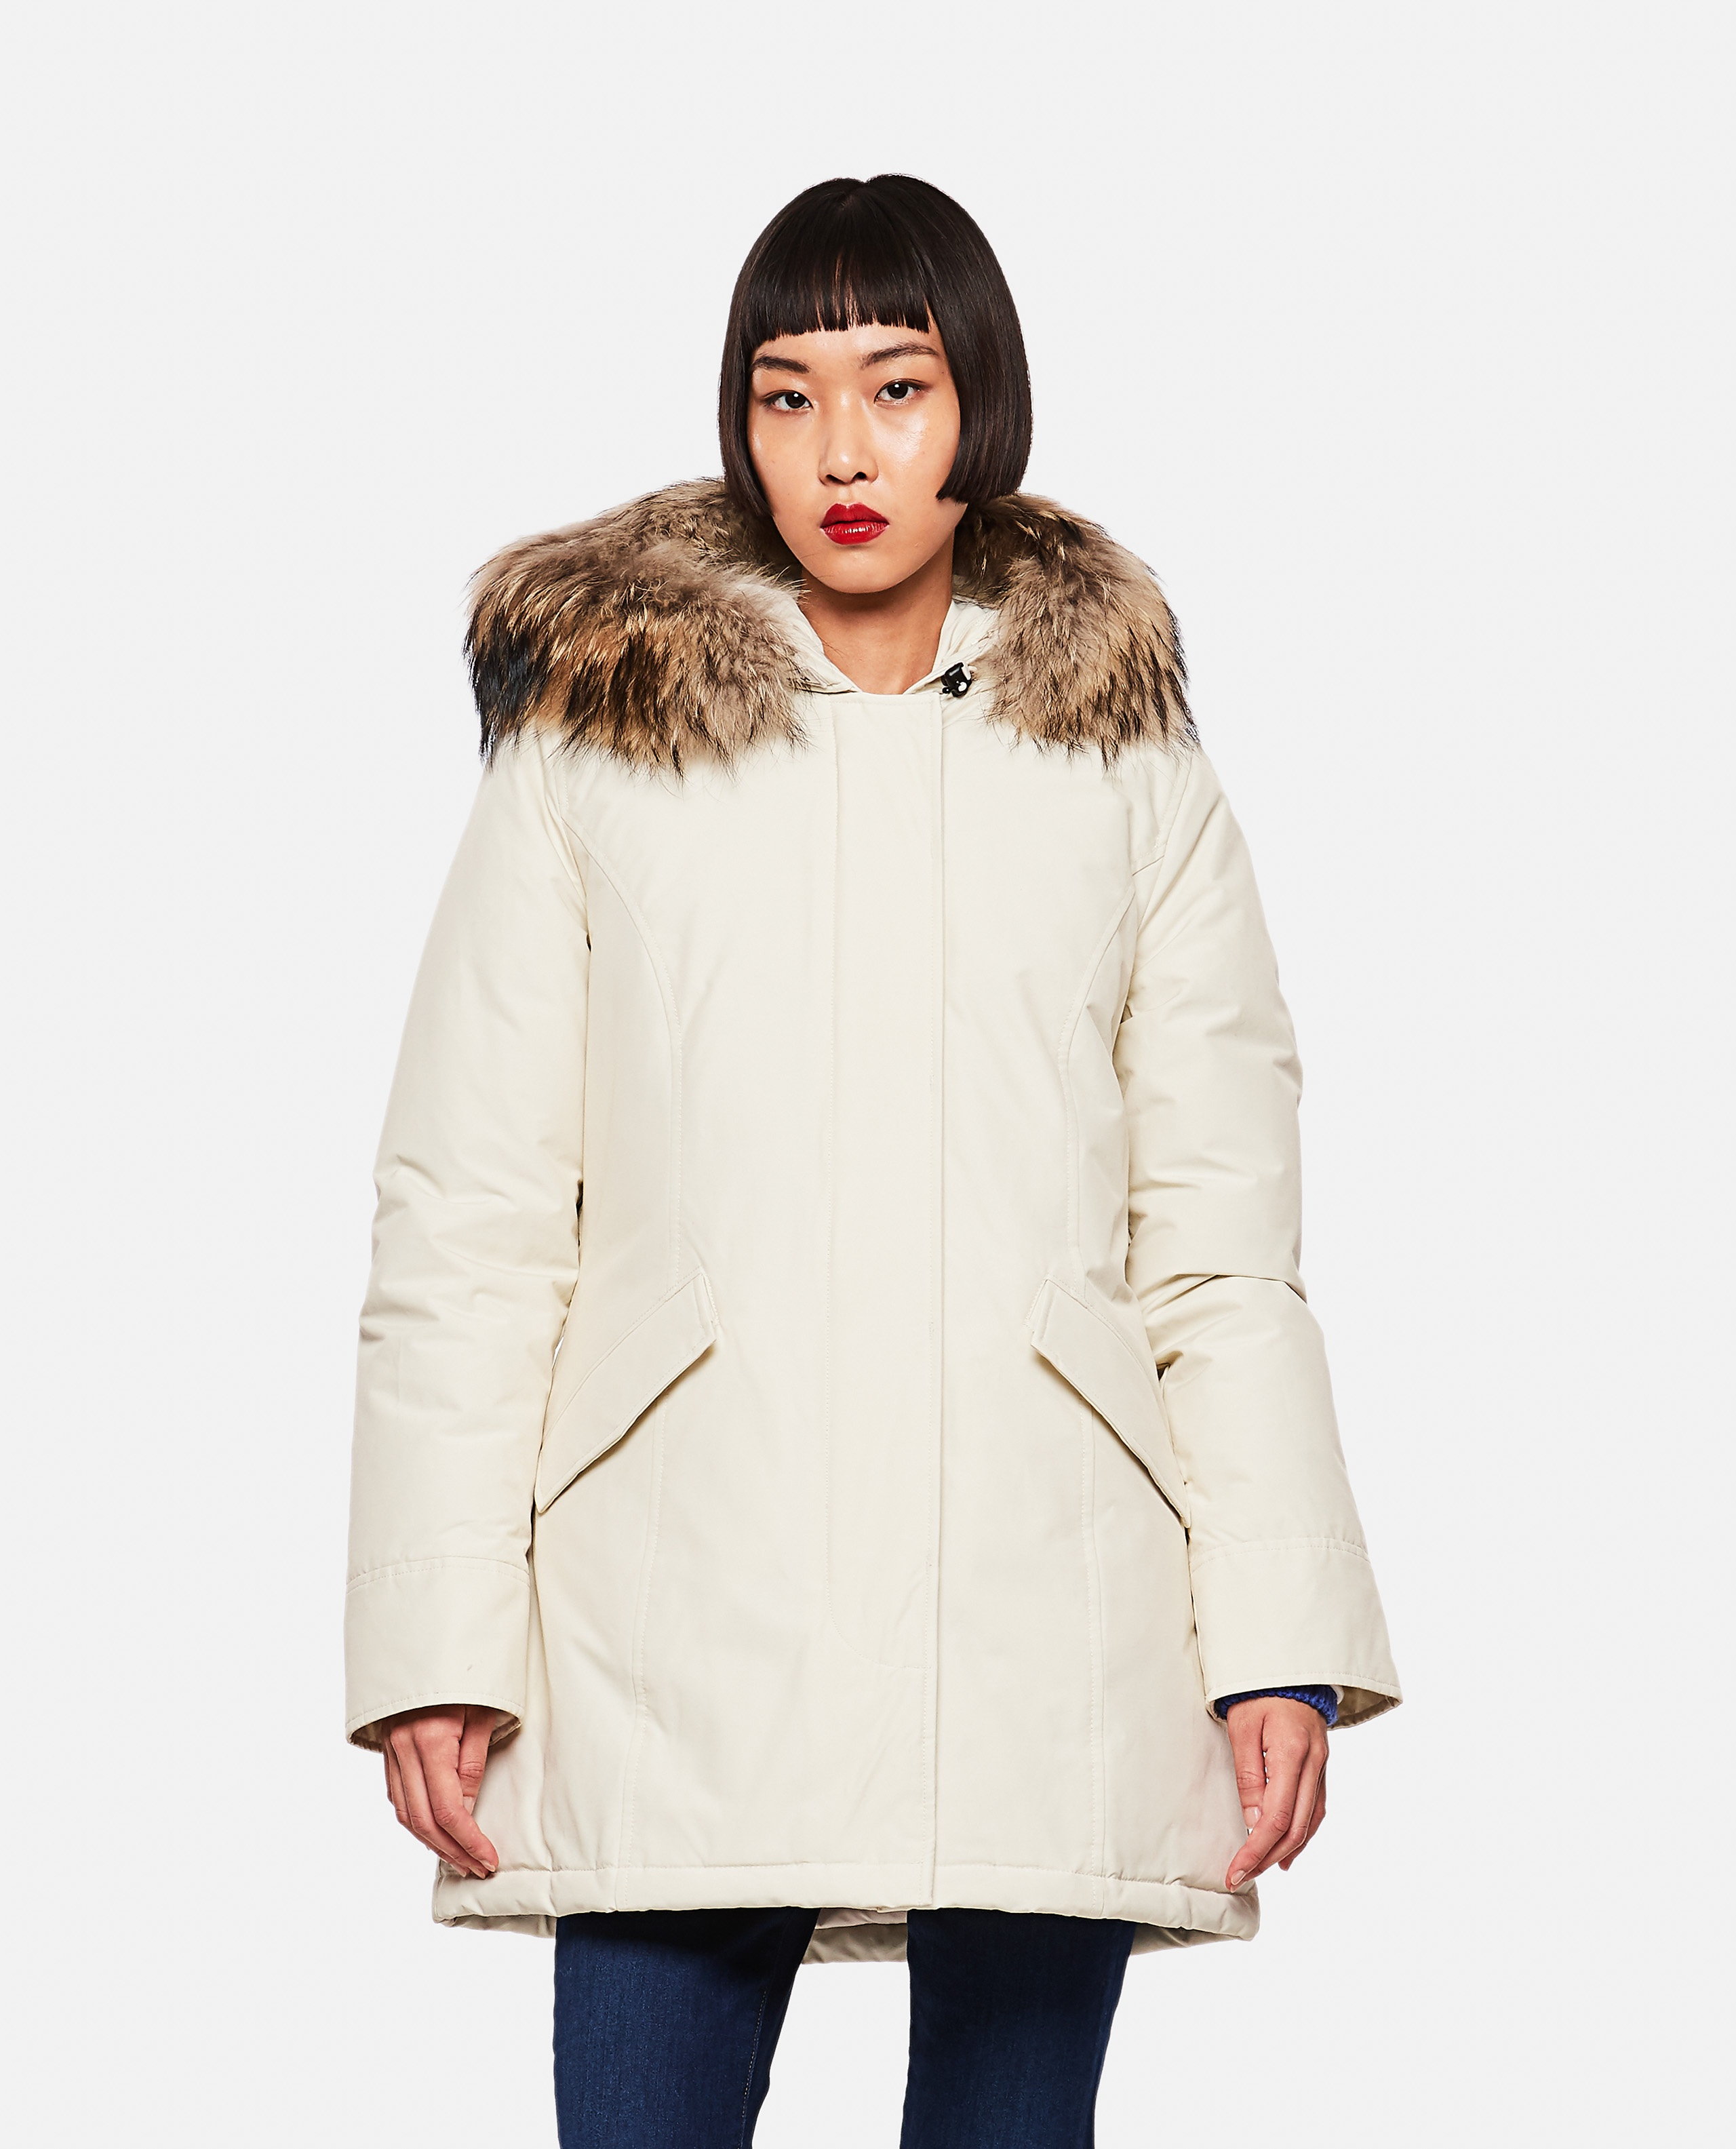 Parka in cotone Donna Woolrich 000275740040628 1